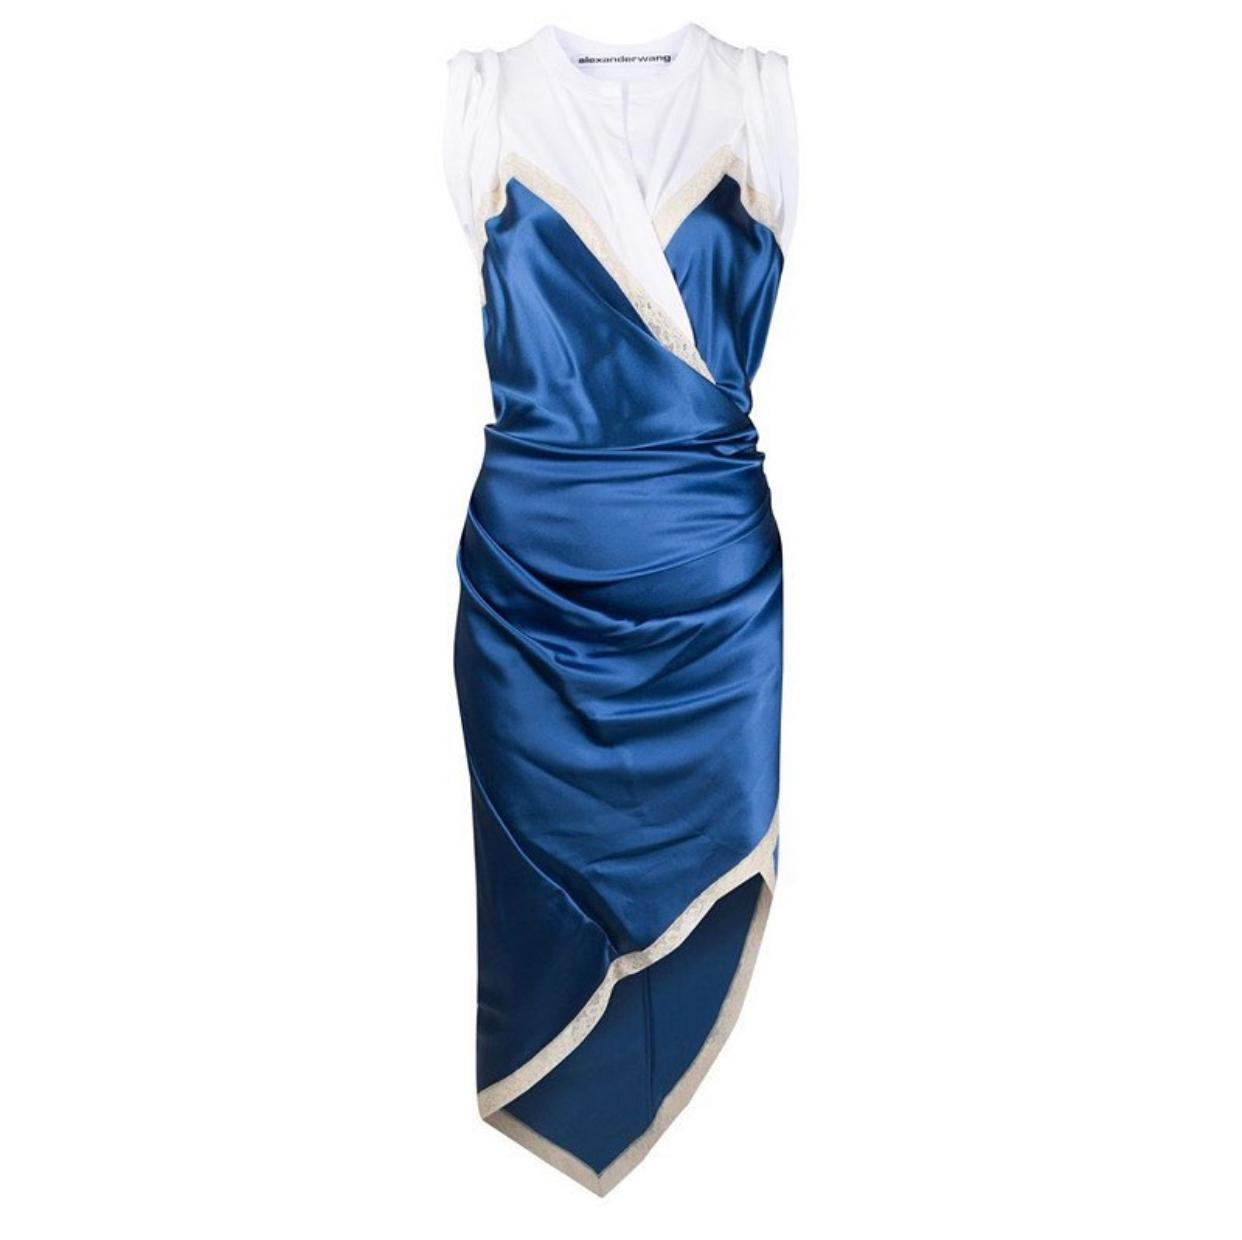 Blue & white Asymmetrical dress